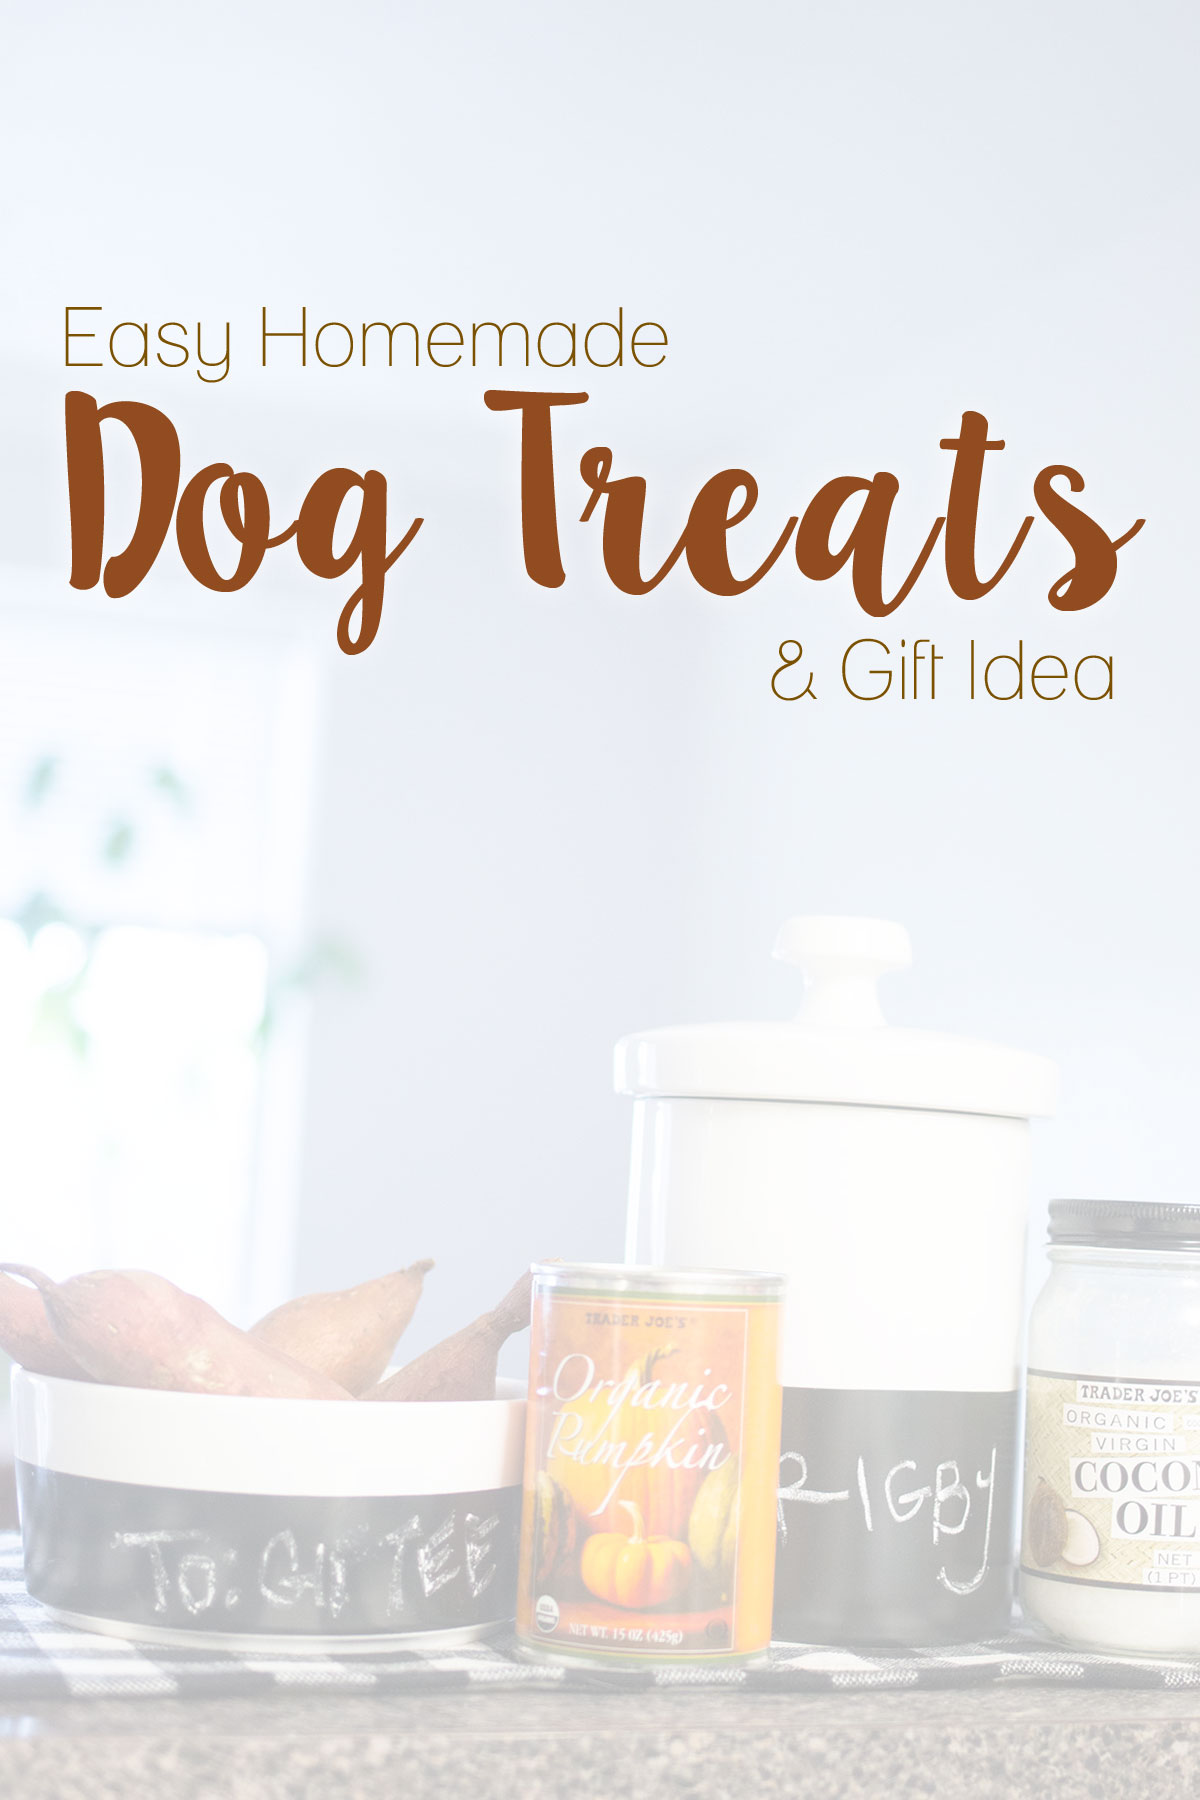 Easy Homemade Dog Treats & Holiday Gift Idea // hellorigby.com seattle lifestyle blog